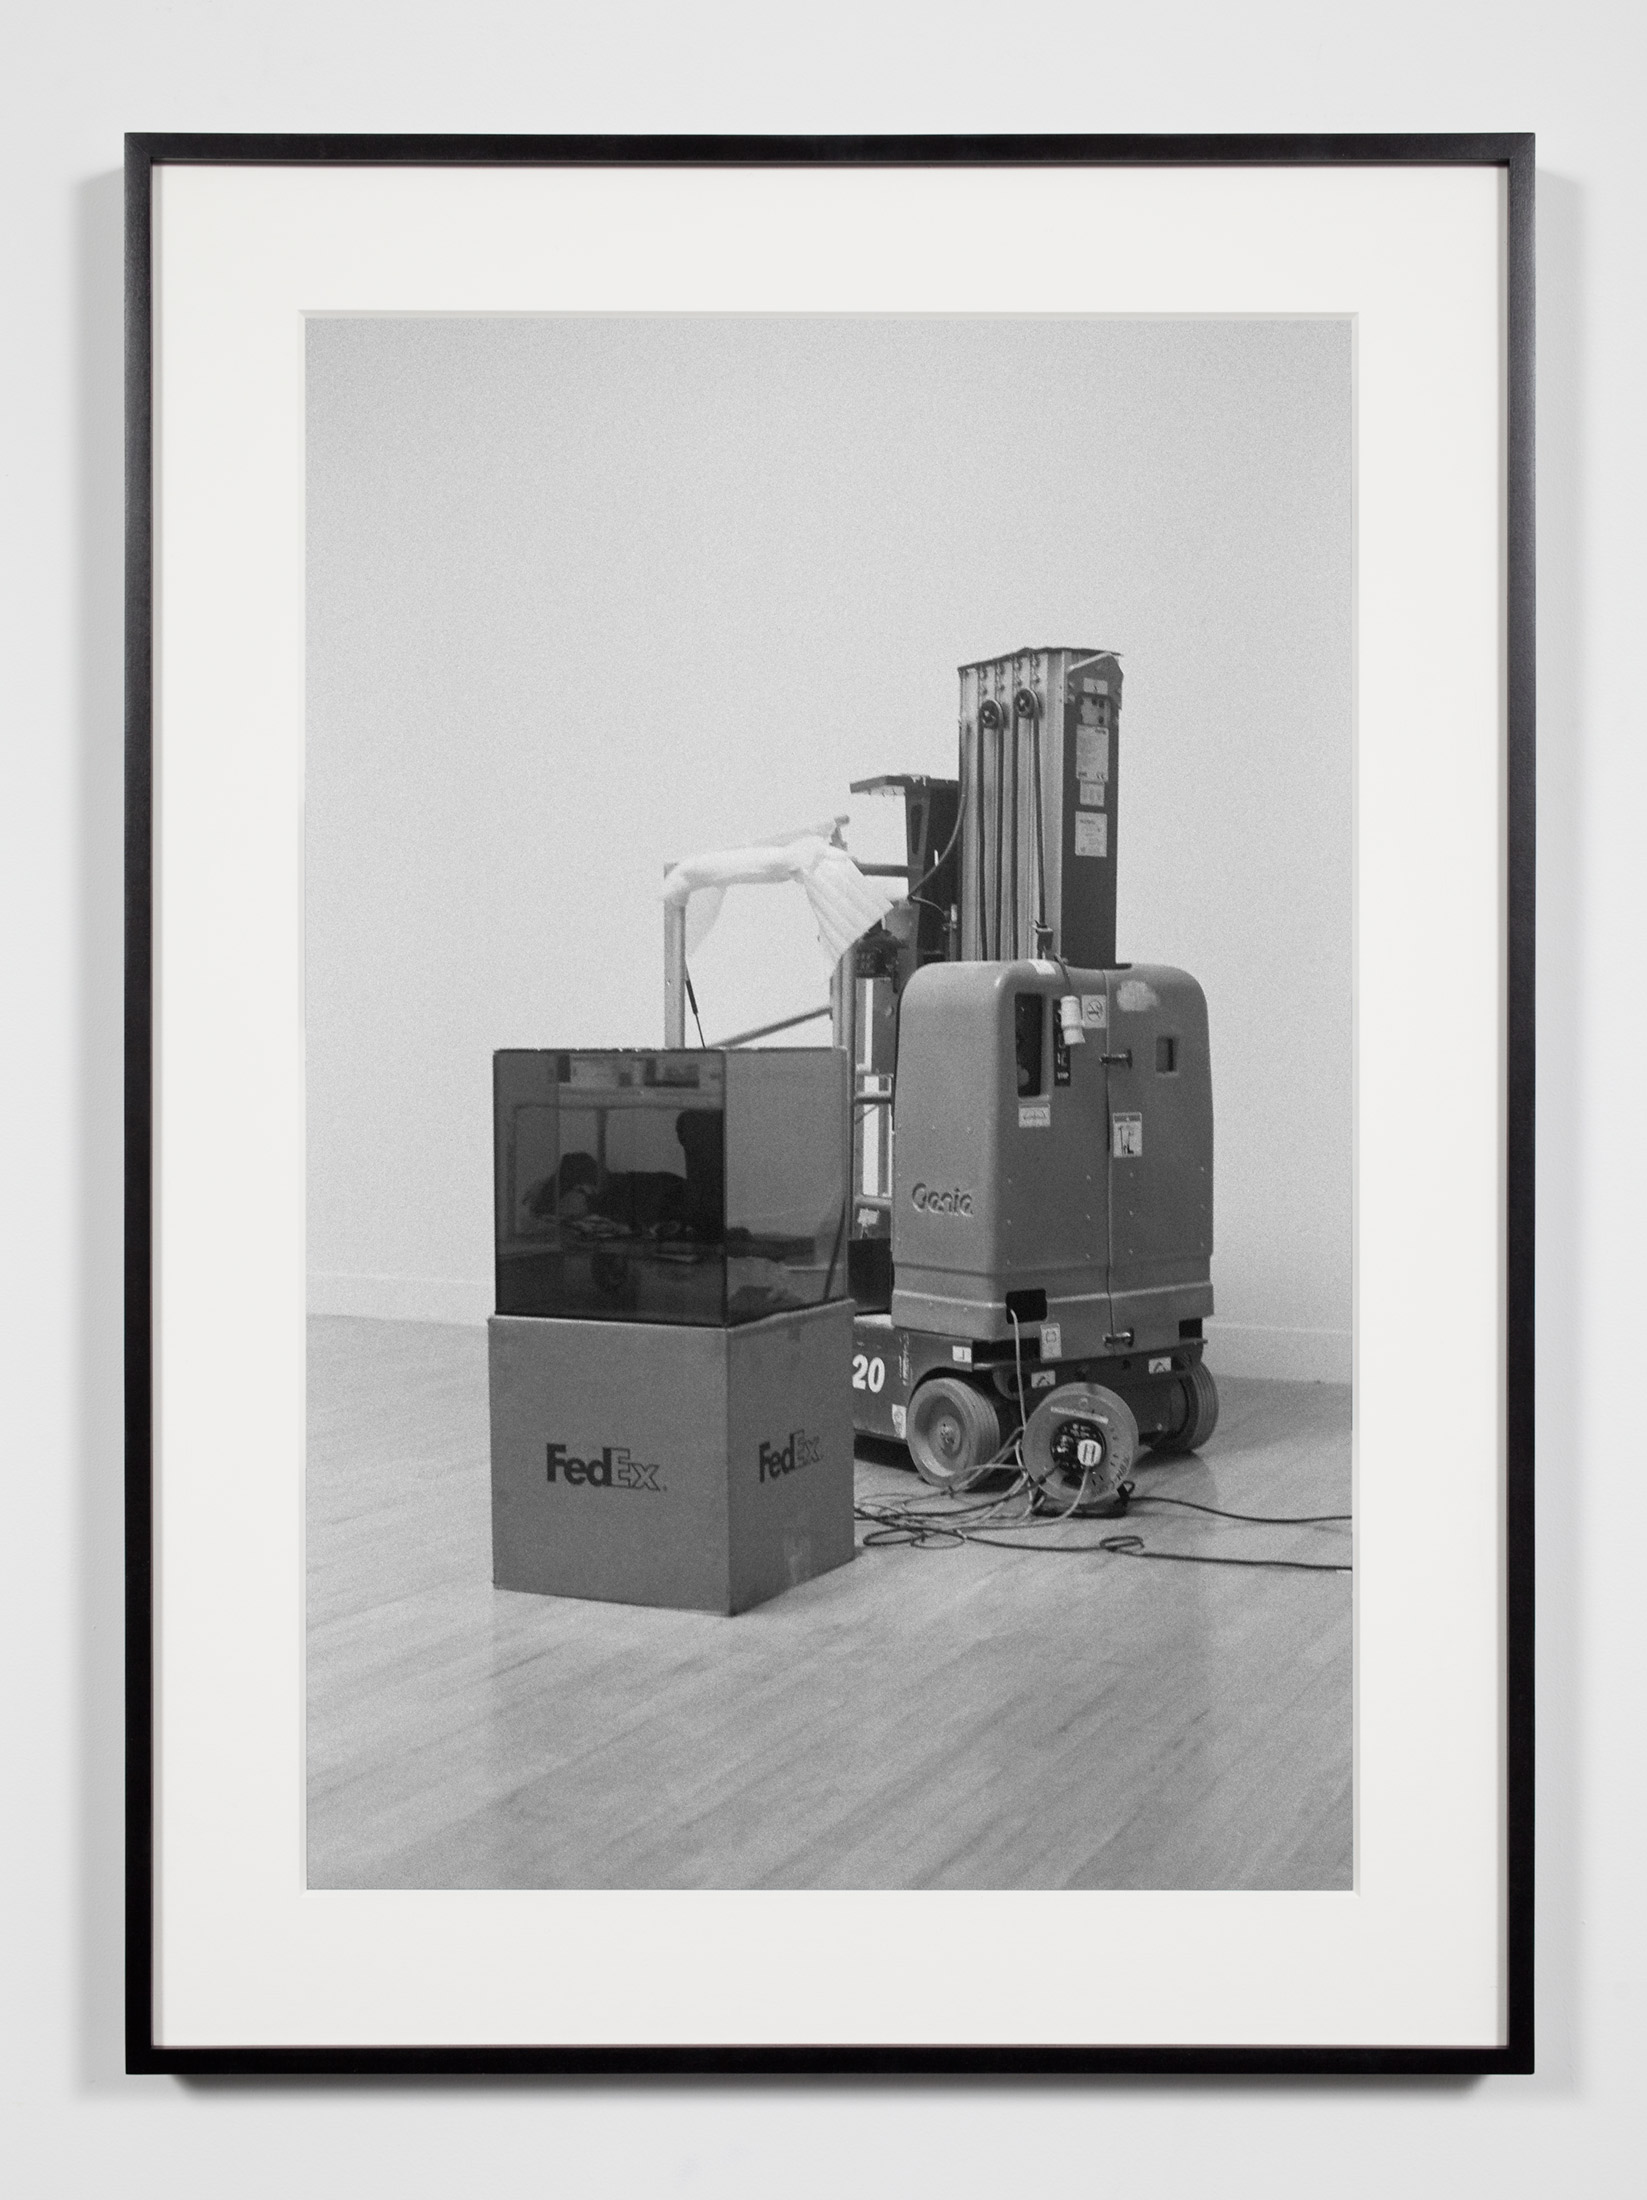 Installation View, London, United Kingdom, January 30, 2009    2011   Epson Ultrachrome K3 archival ink jet print on Hahnemühle Photo Rag paper  36 3/8 x 26 3/8 inches   Industrial Portraits, 2008–